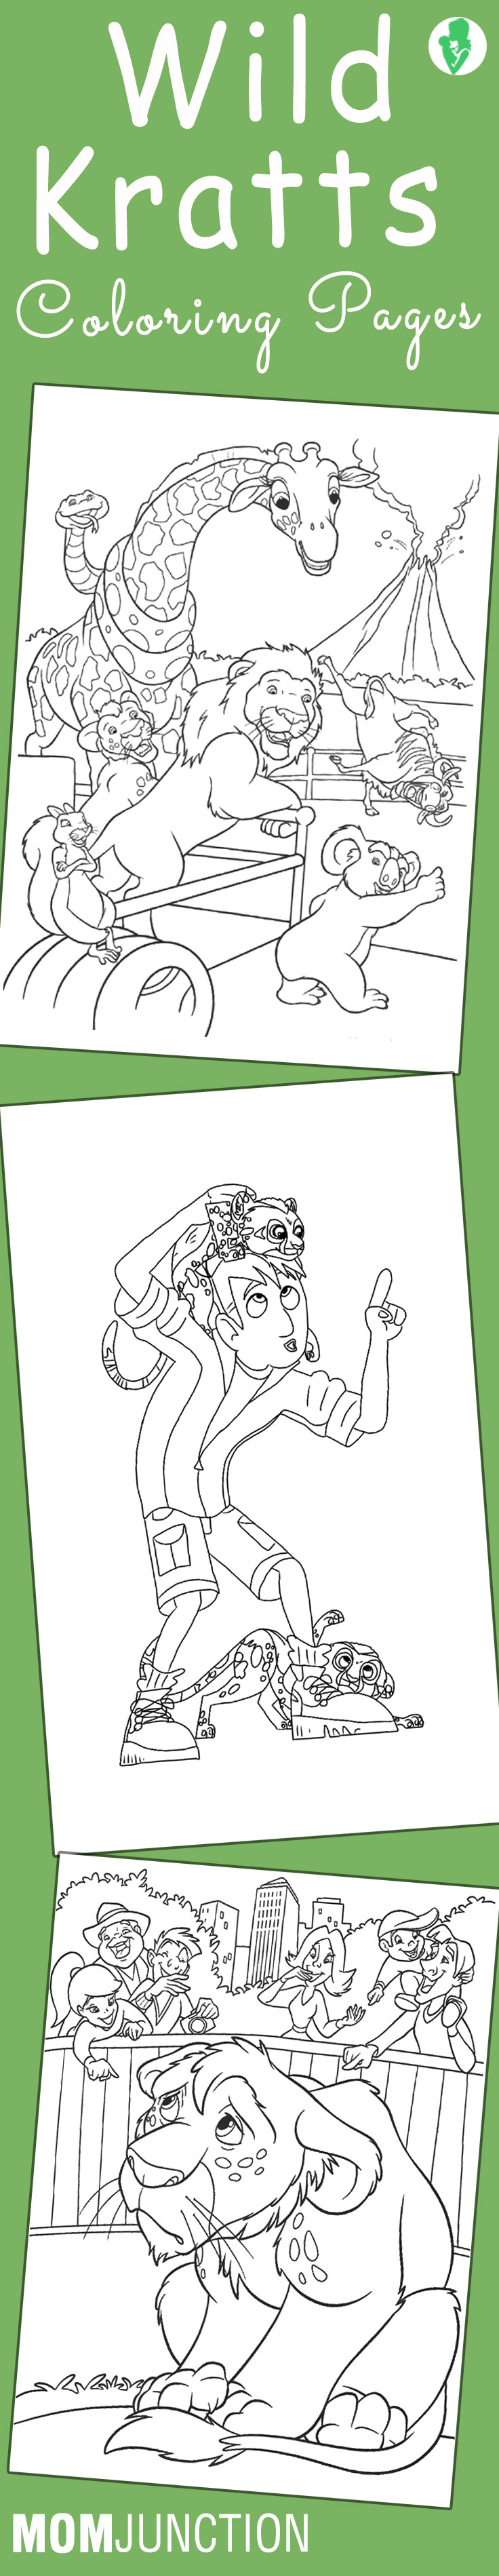 Wild Kratts Coloring Pages - Free Printable